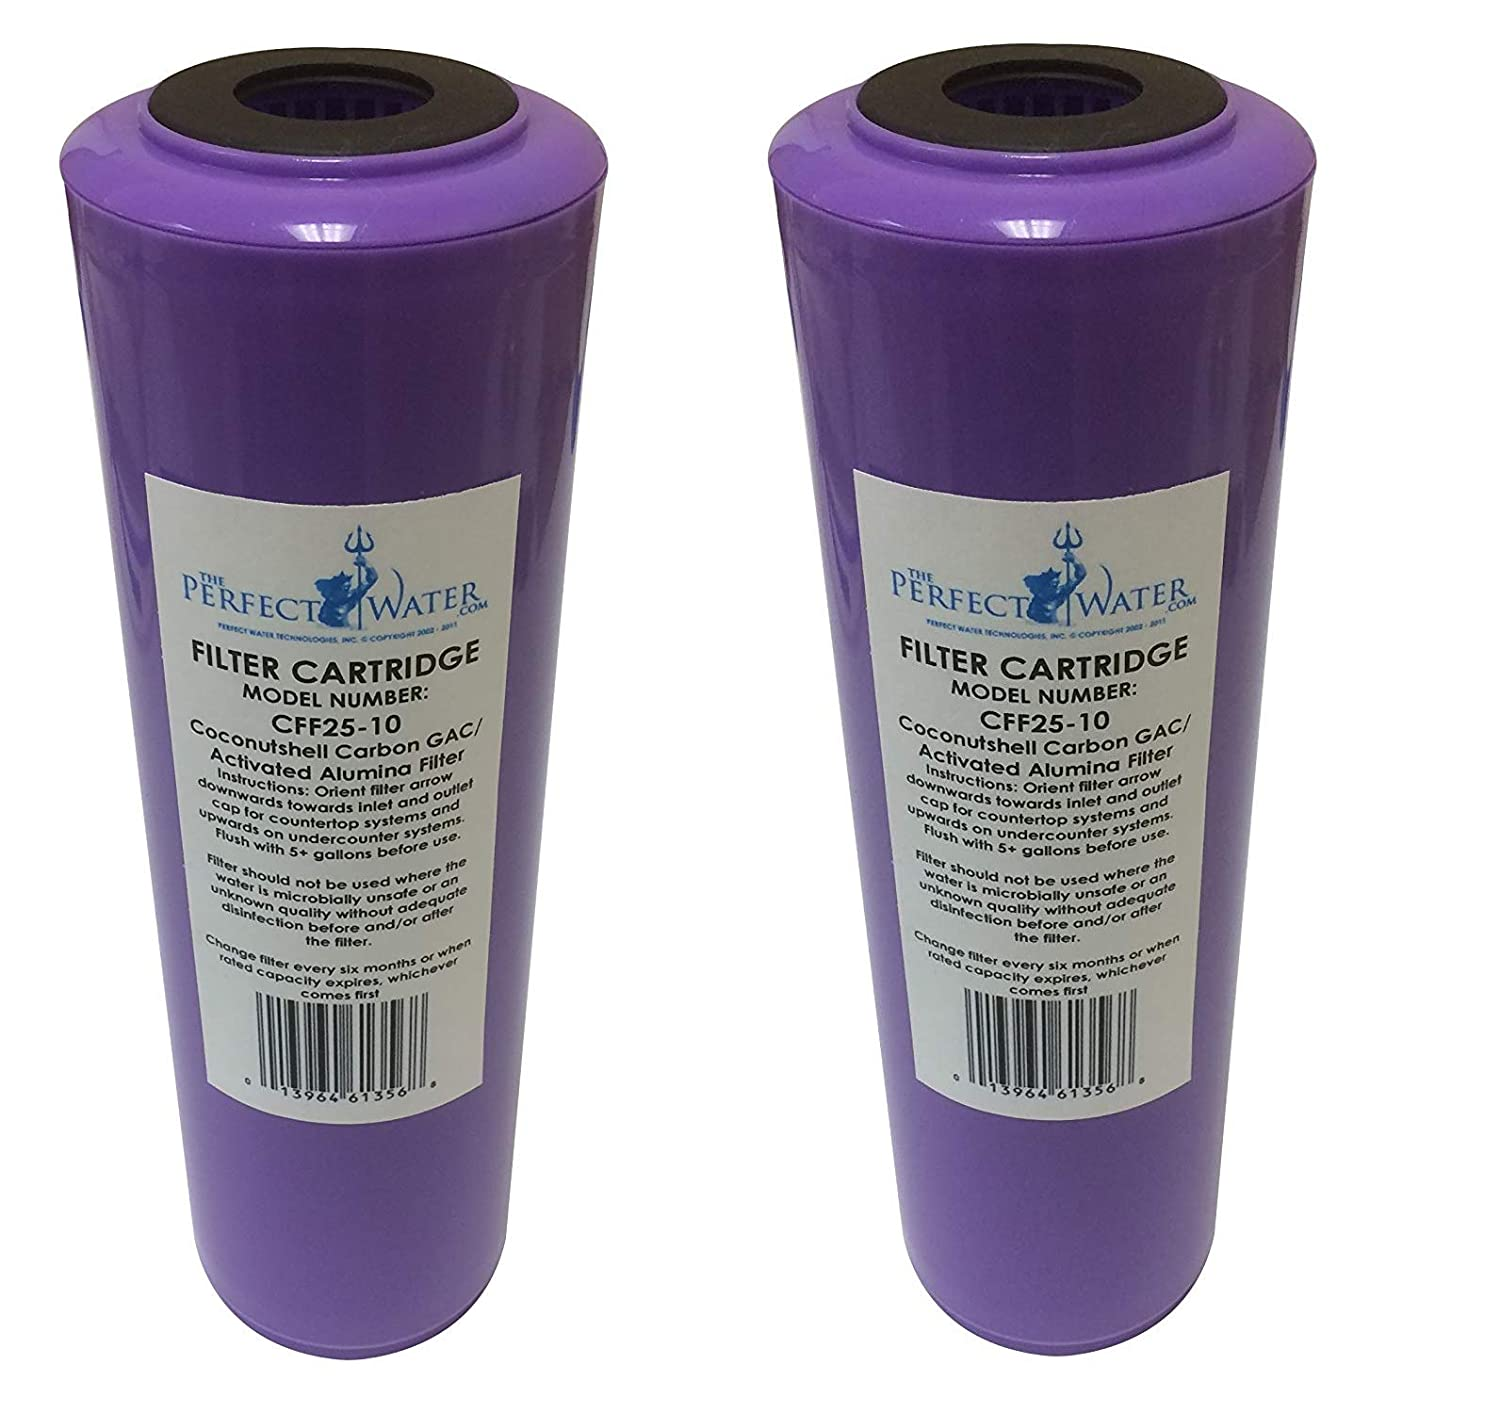 Home Master CFF25-10 Jr F2 Replacement Water Filter, Activated Alumina/GAC Fluoride Filter, Purple (Pack of 2)